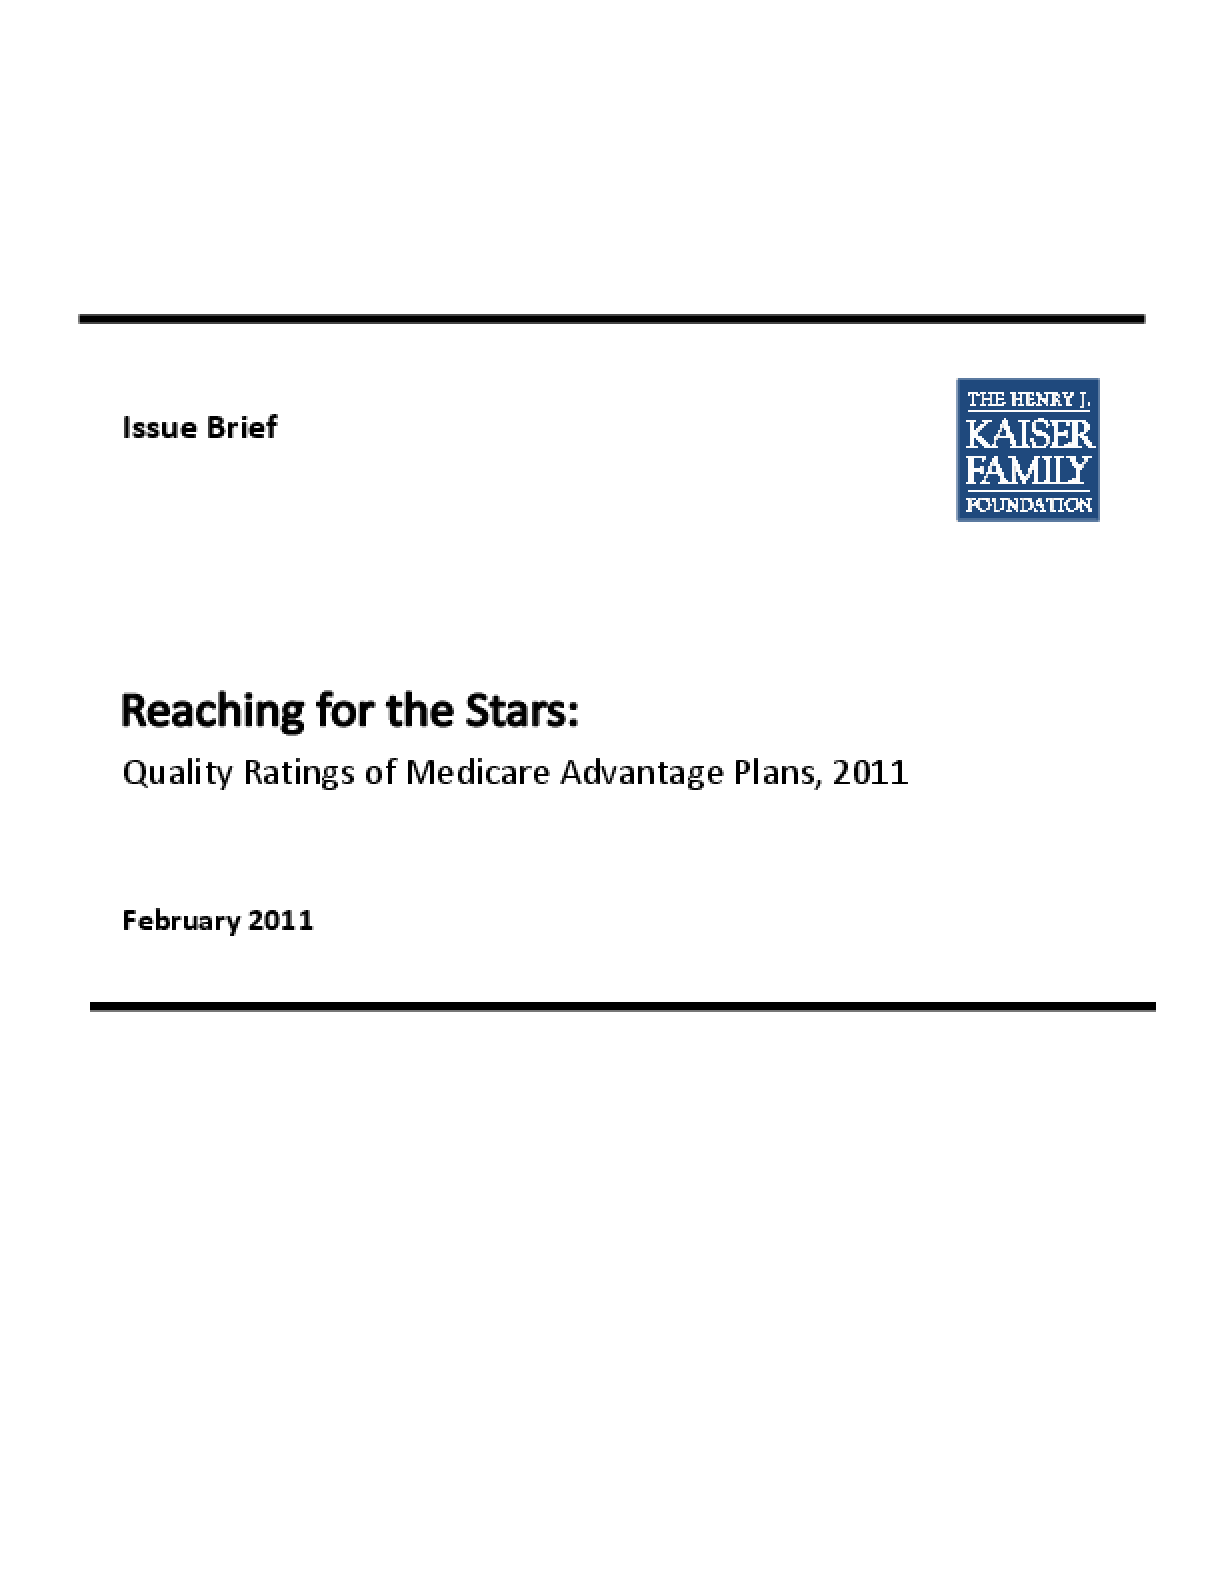 Reaching for the Stars: Quality Ratings of Medicare Advantage Plans, 2011